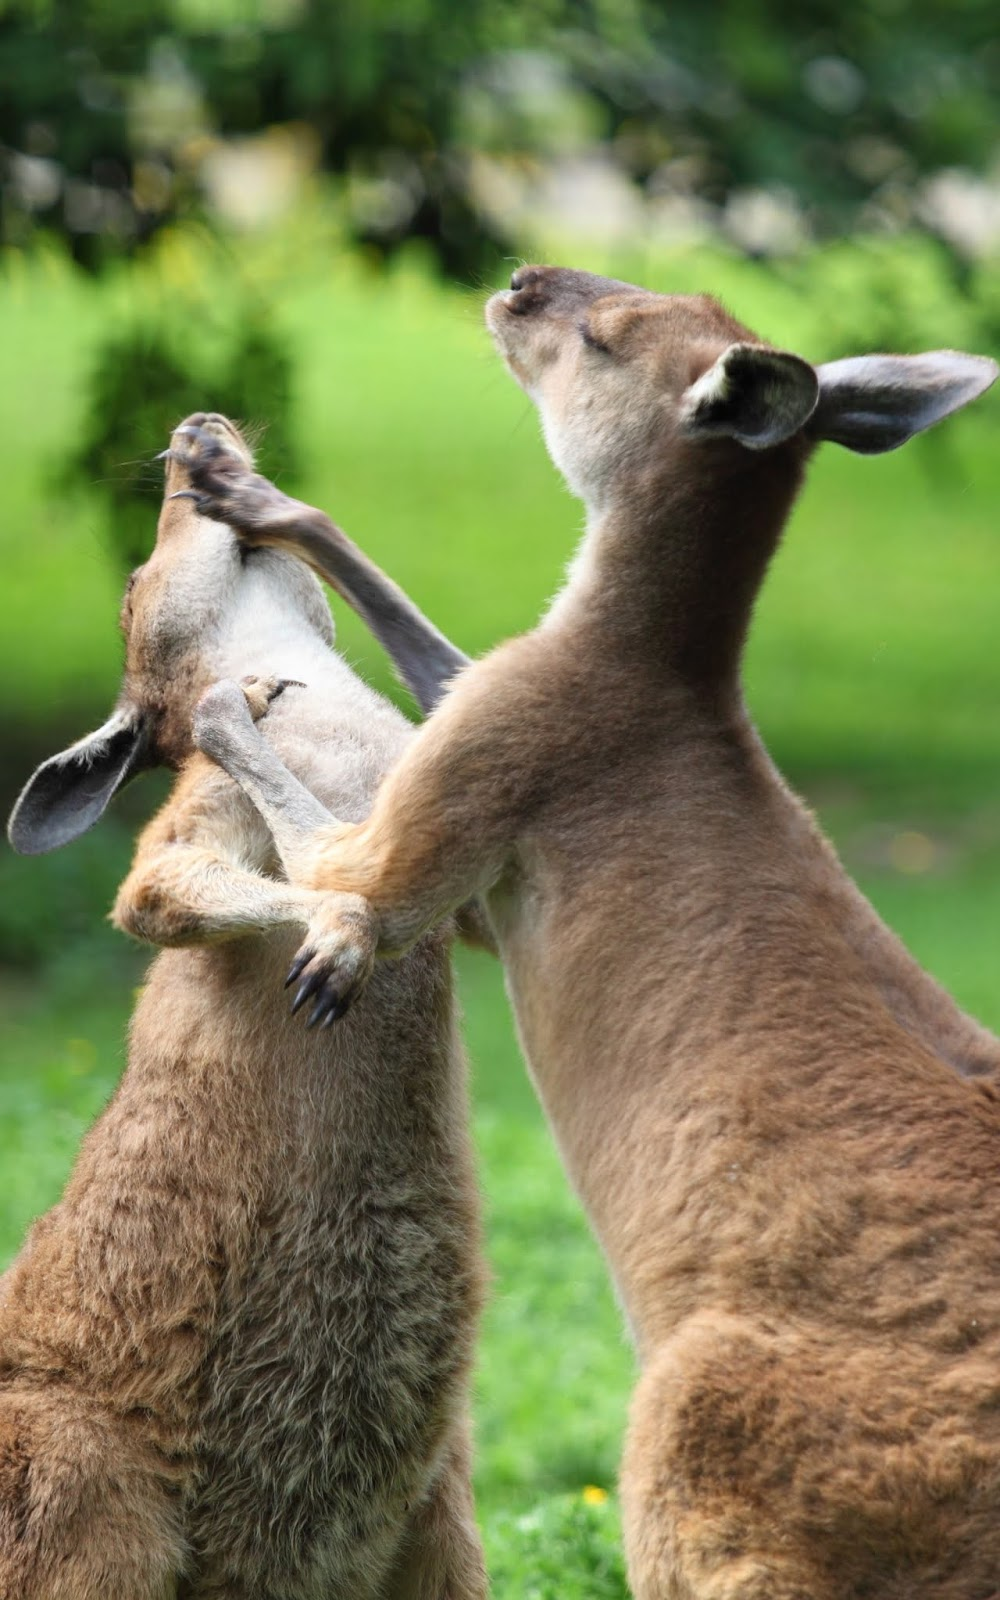 Picture of a kangaroo fight.